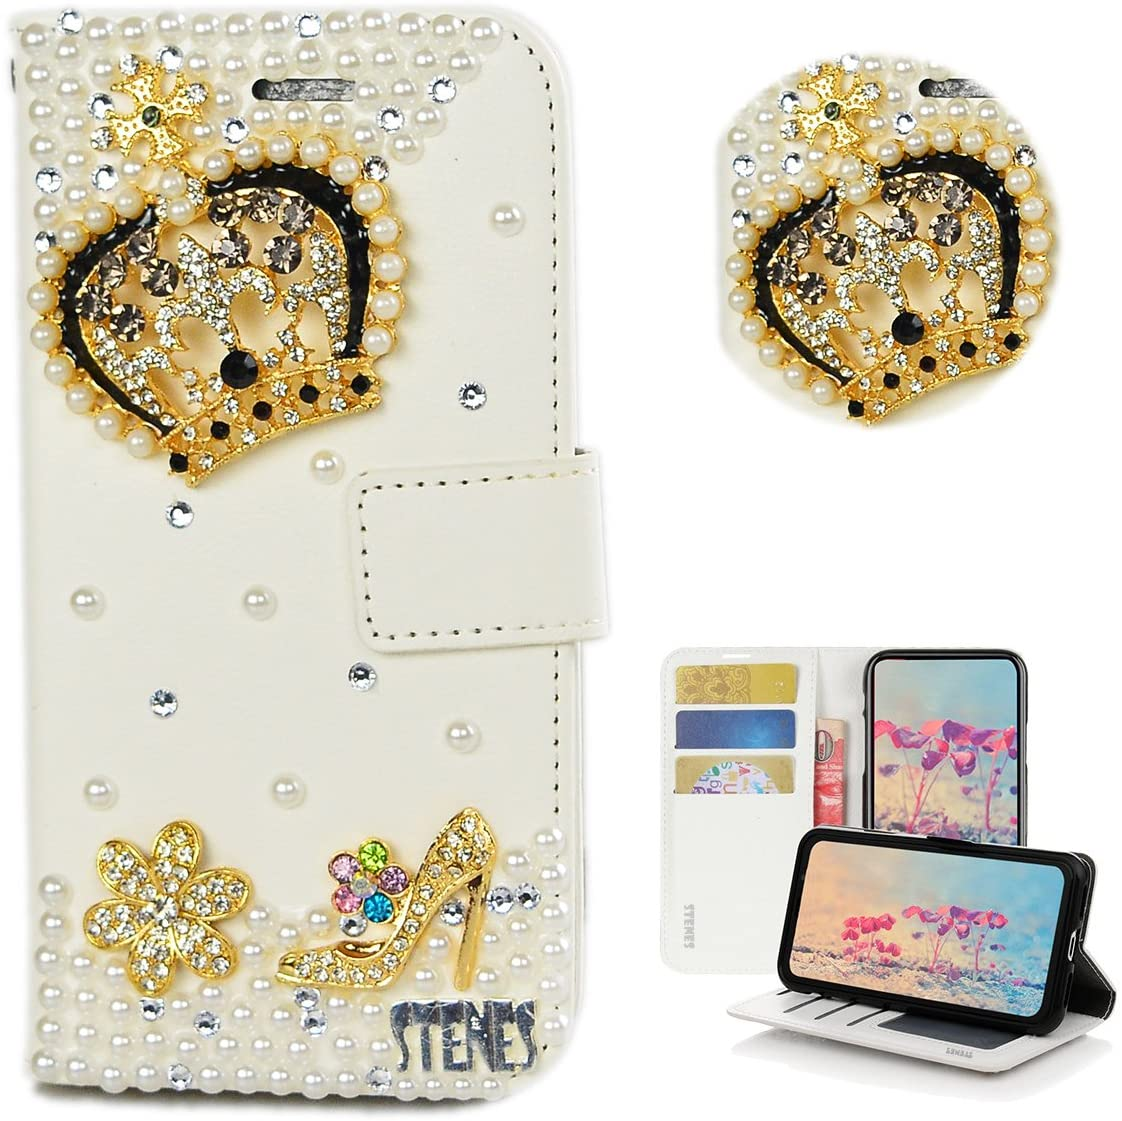 STENES iPod Touch 6 Case - STYLISH - 3D Handmade Bling Crystal Crown Girls High Heel Flowers Design Wallet Credit Card Slots Fold Stand Leather Cover For iPod Touch 5/6th - Gold